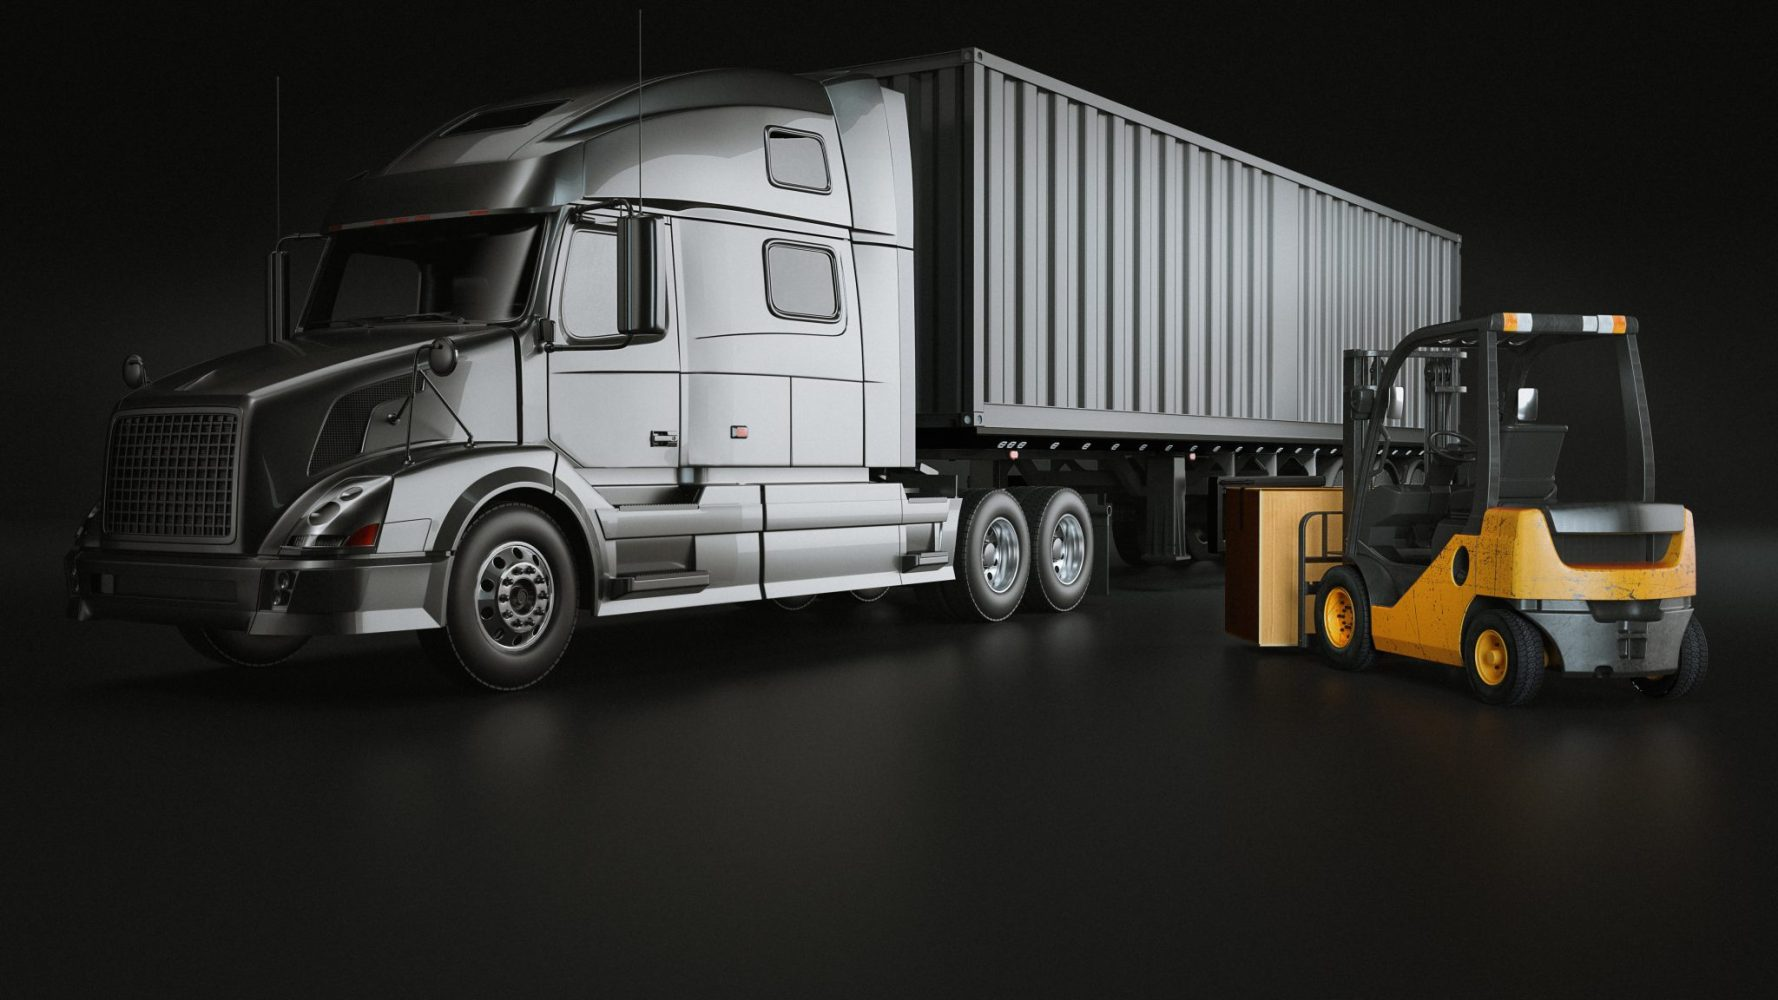 truck and  Folk Lift in the studio room. 3d rendering and illustration.